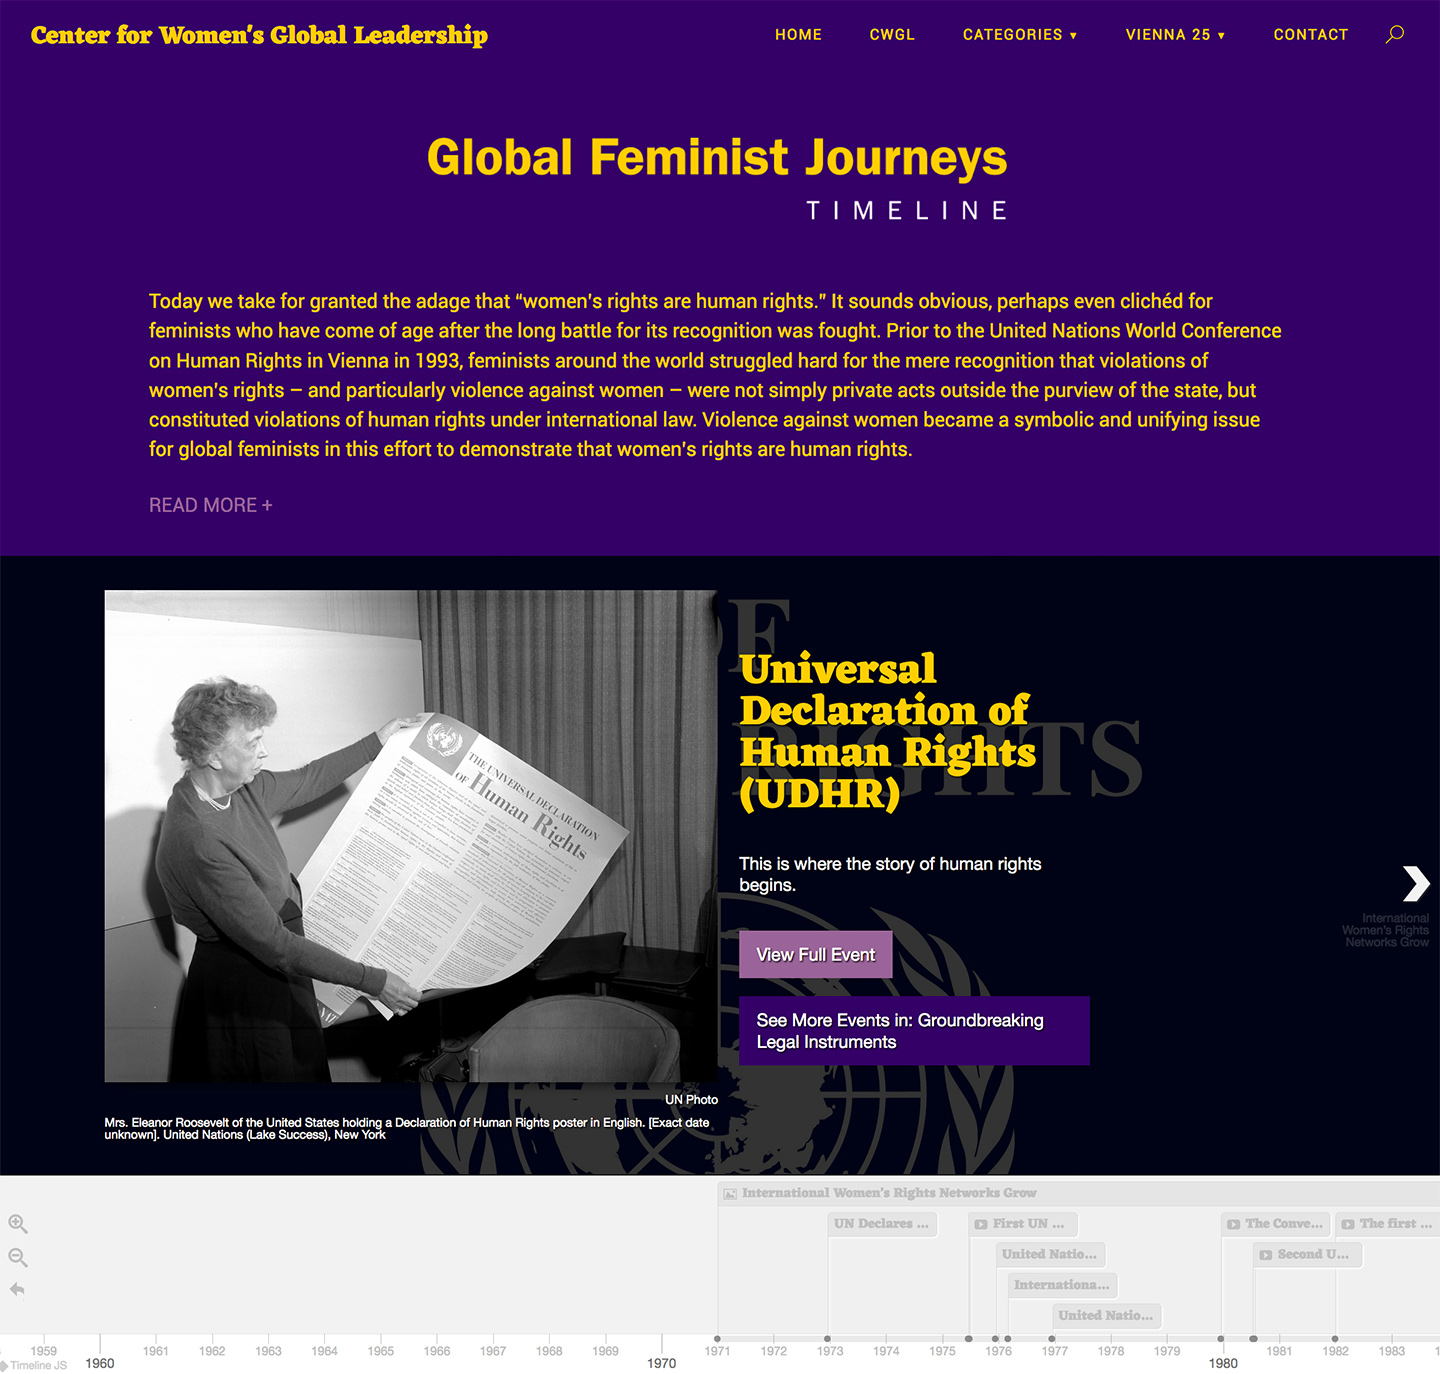 Center for Women's Global Leadership at Rutger's University: Global Feminist Journeys